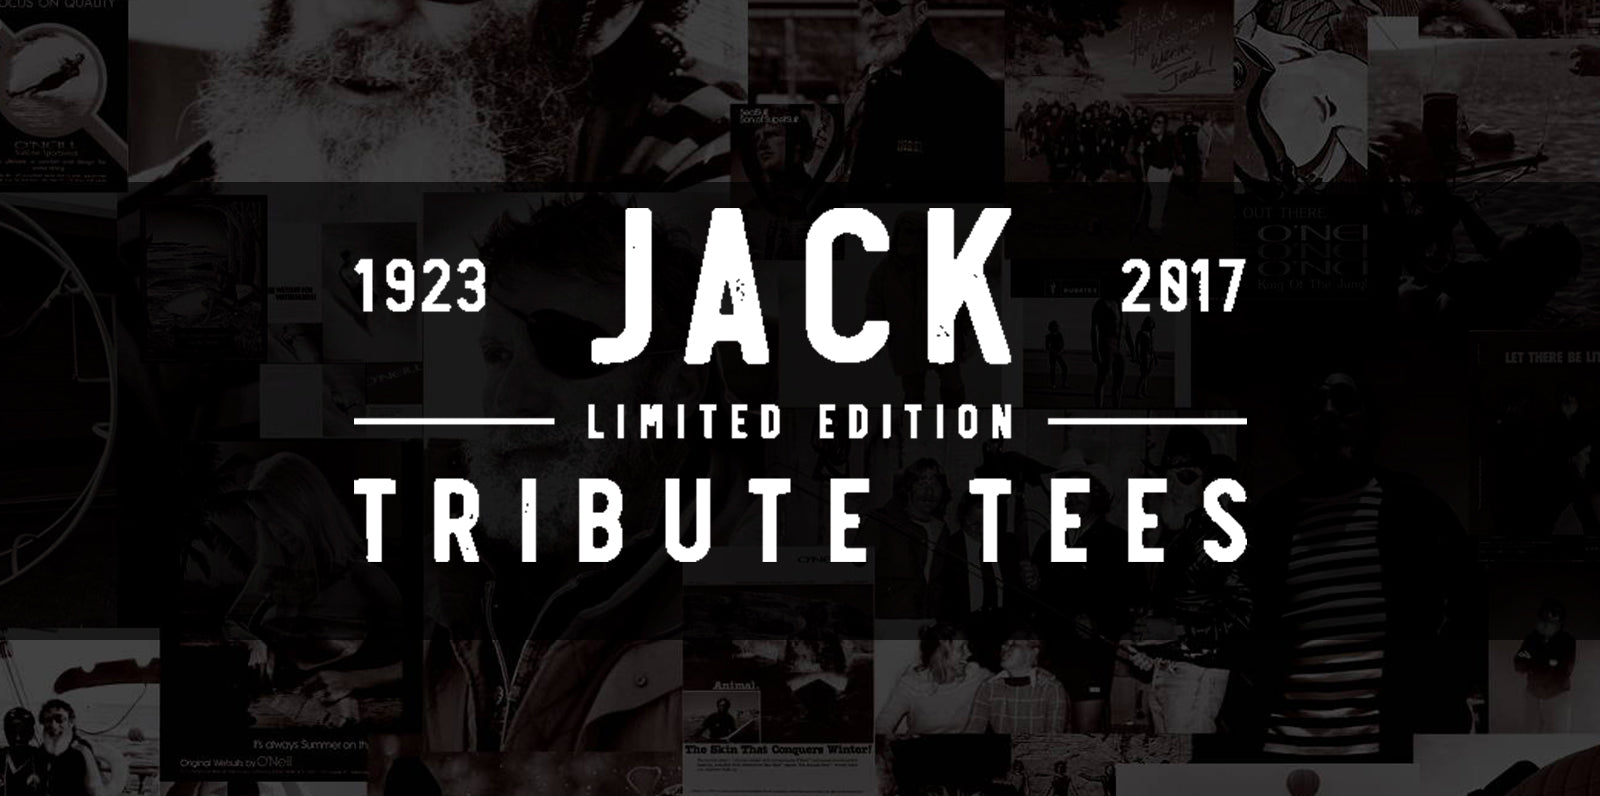 Jack Limited Edition